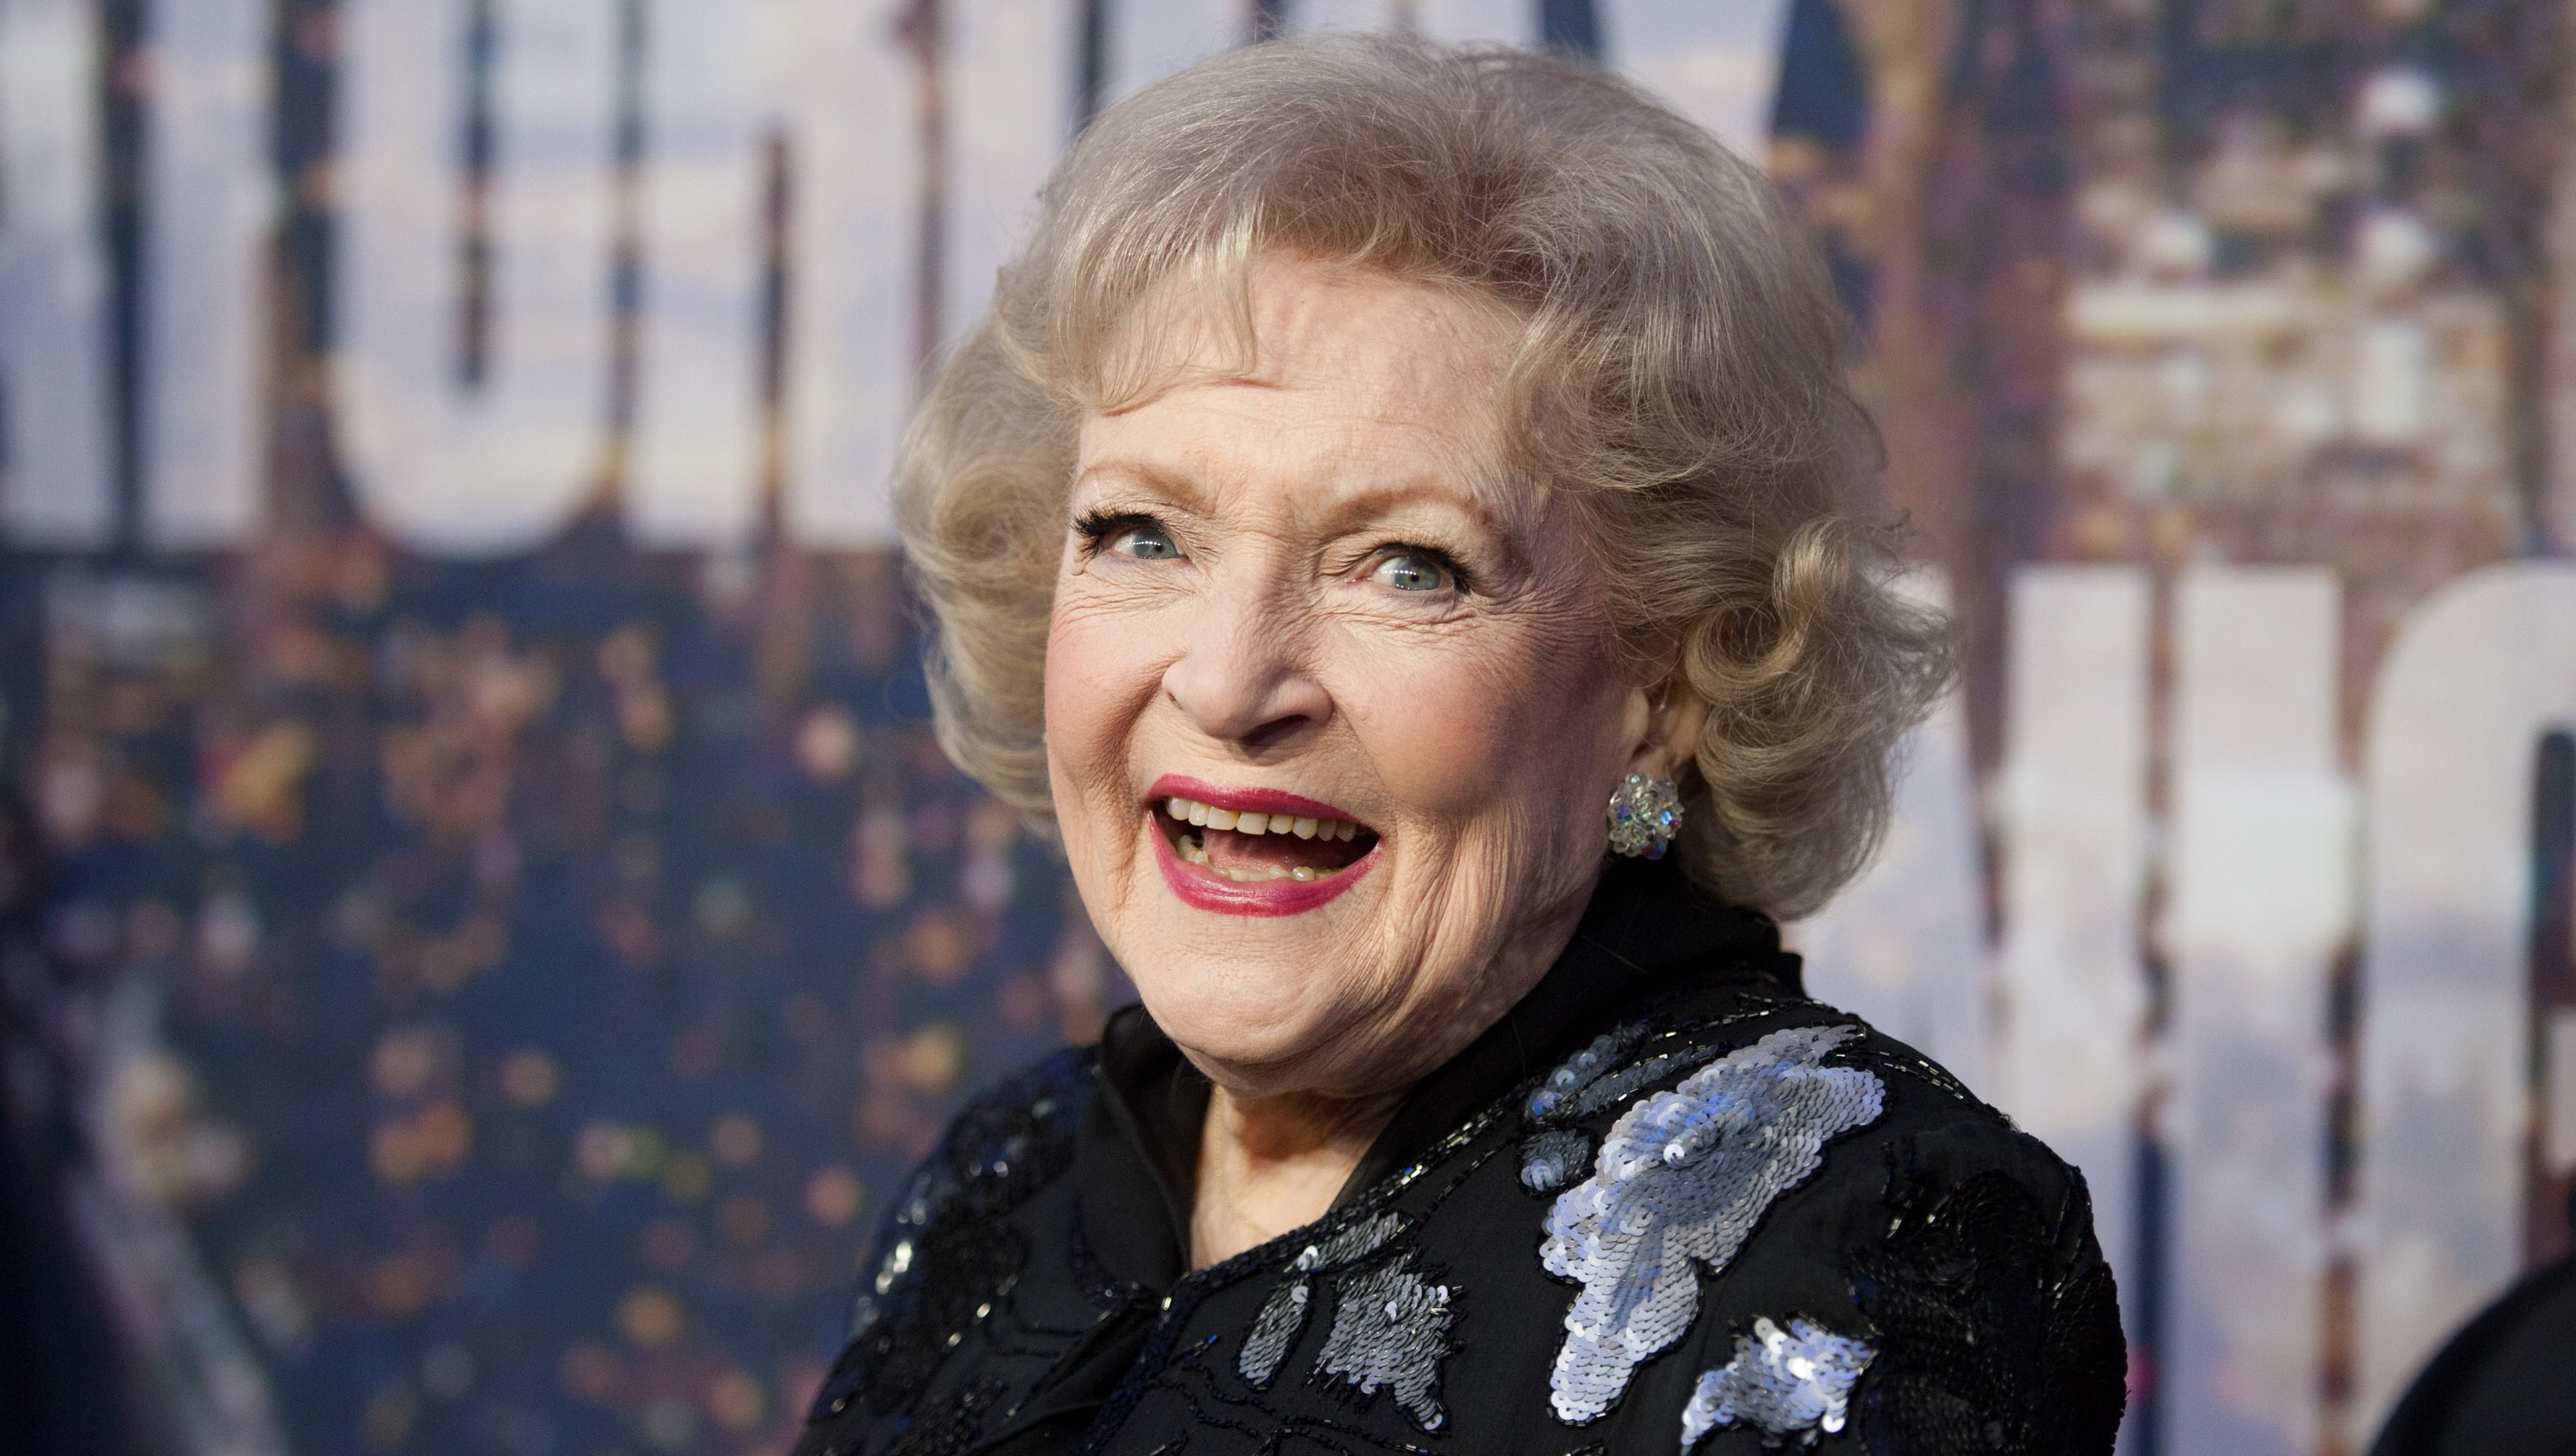 Betty White up close shot of her smiling in a black dress